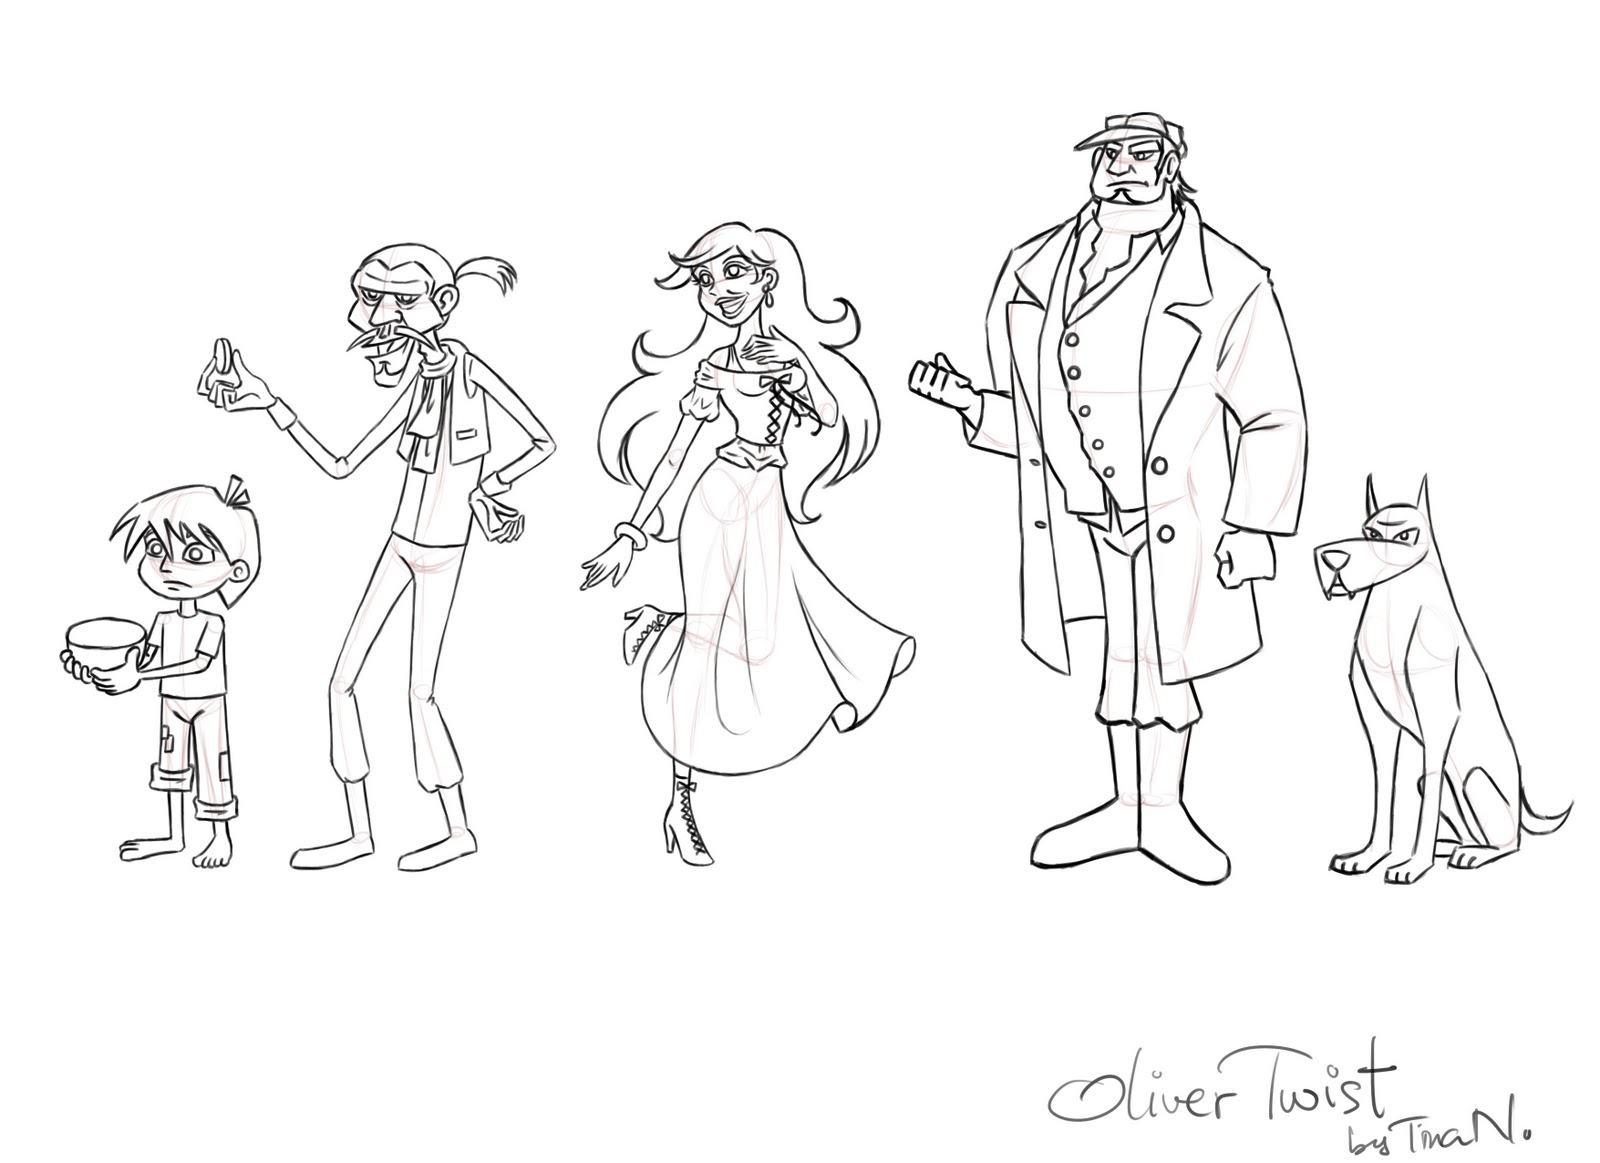 oliver twist coloring pages - photo#5